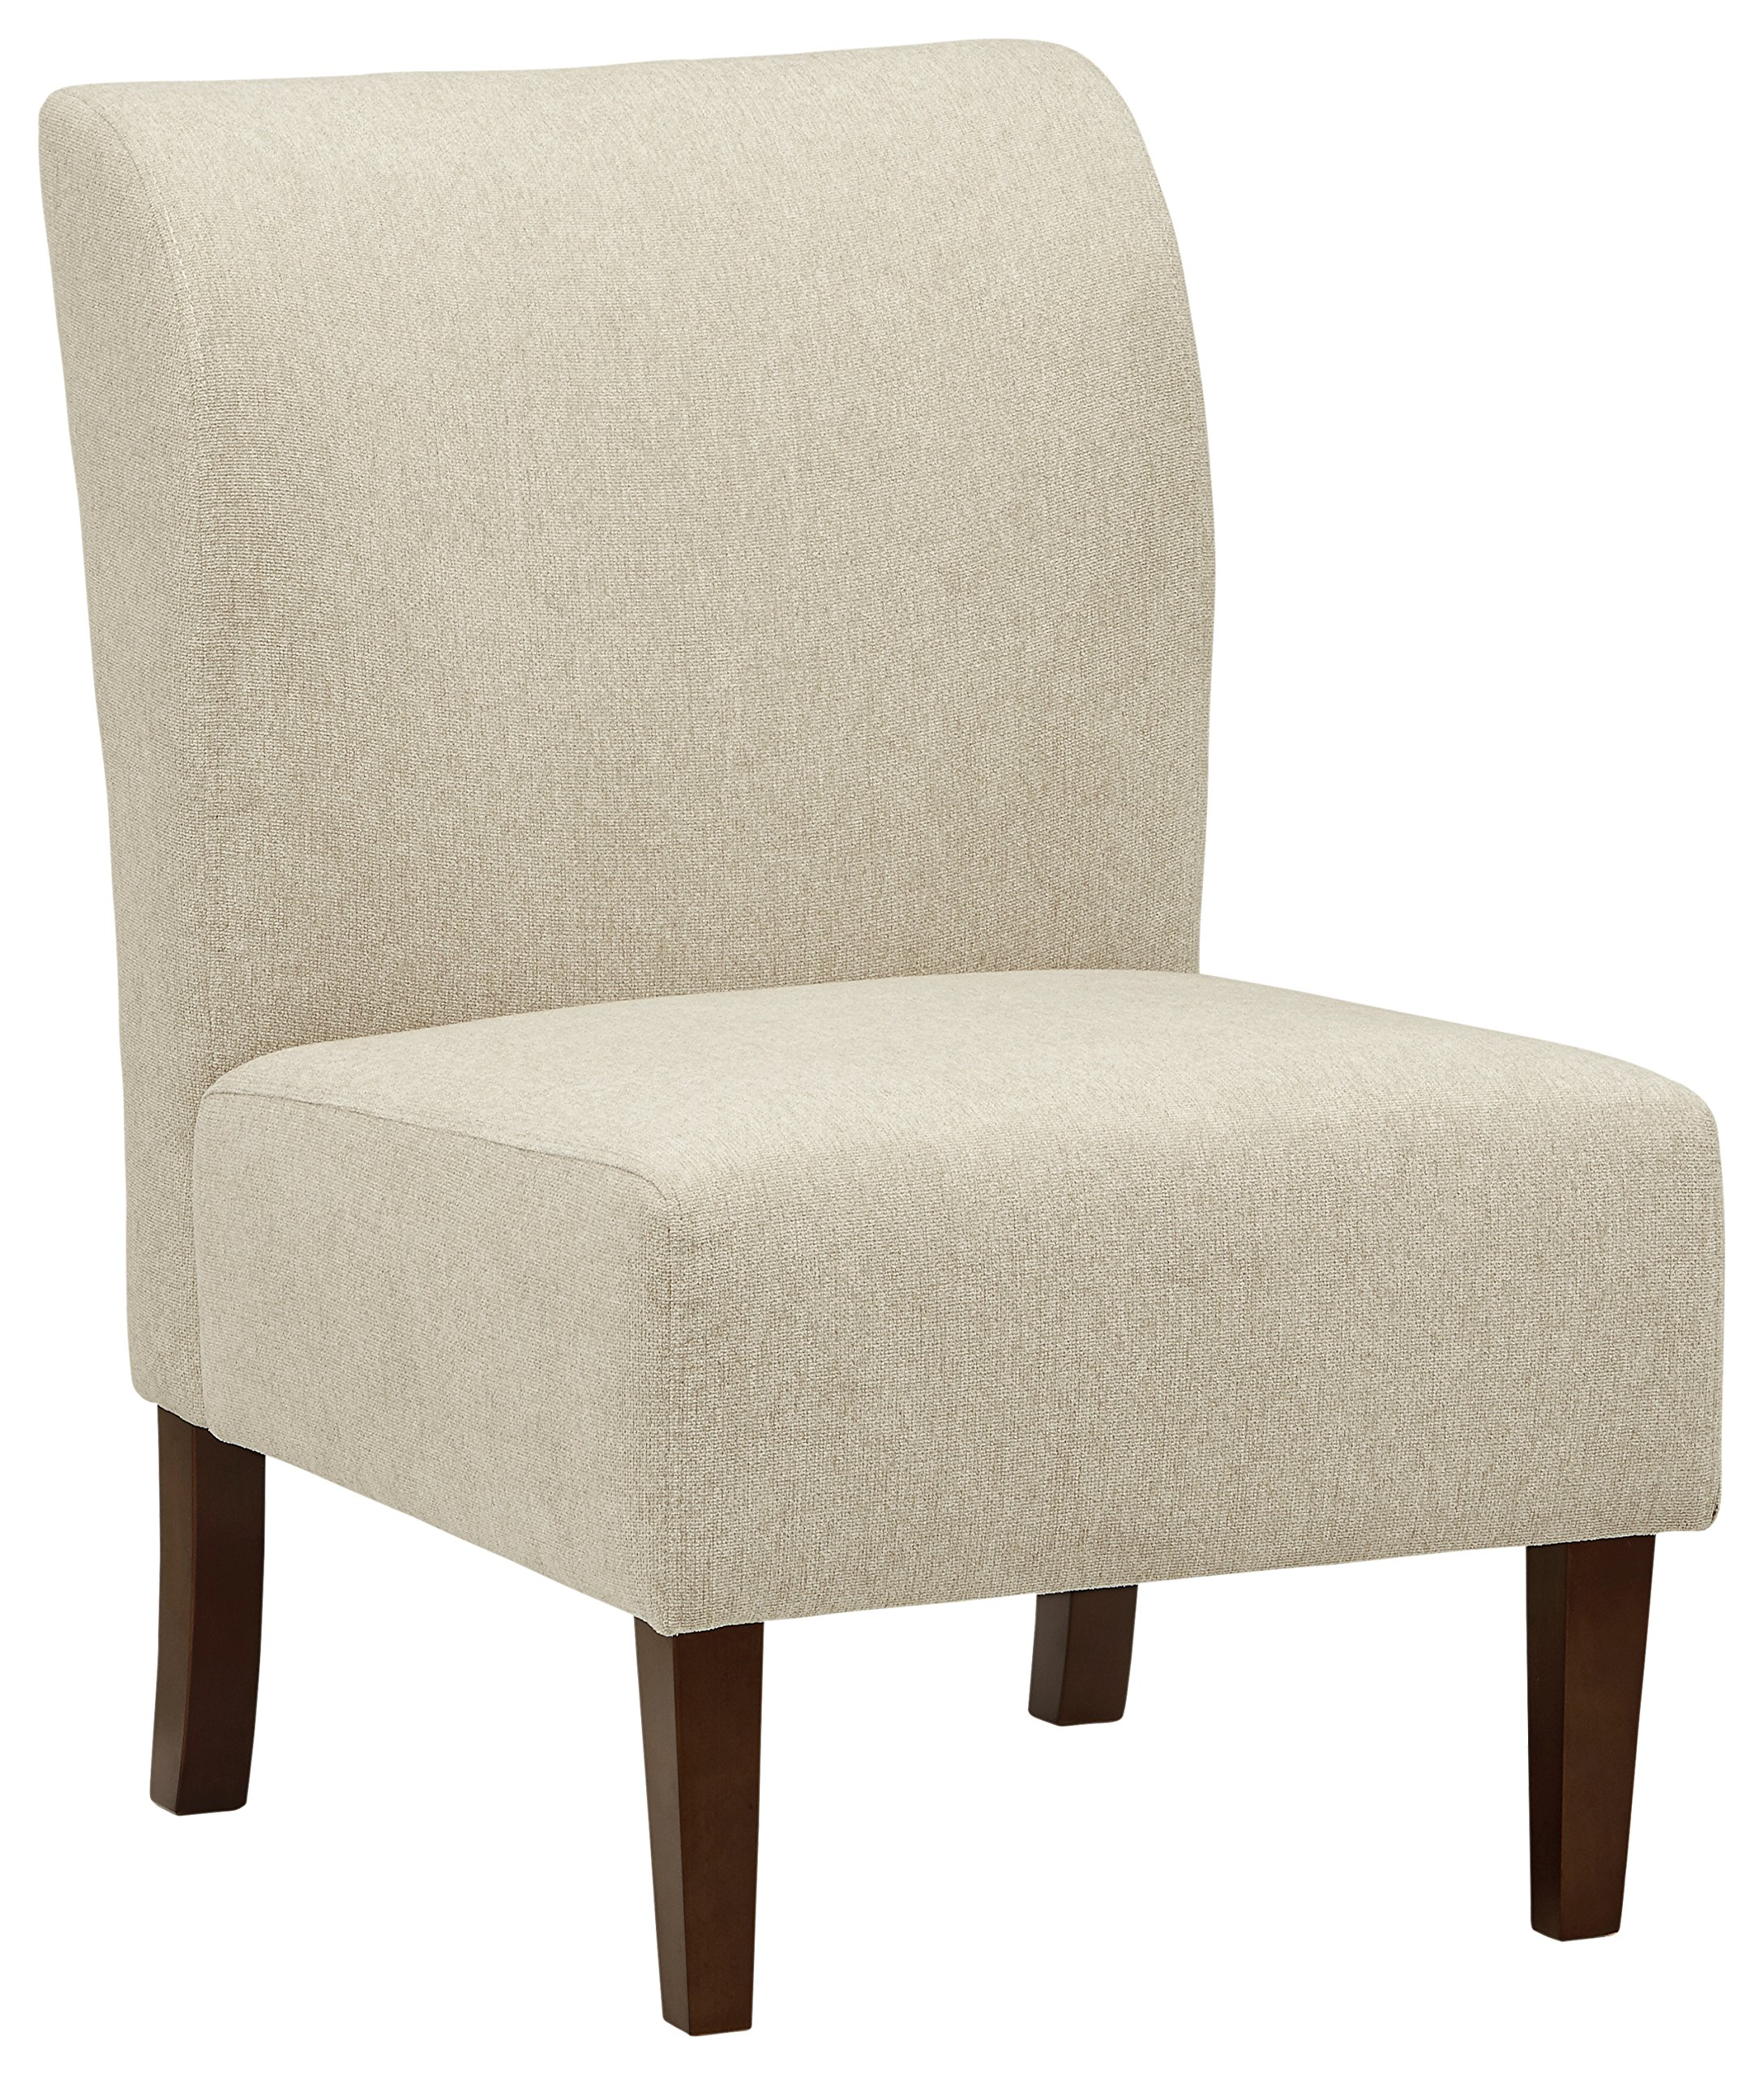 "Amazon Brand – Stone & Beam Lummi Modern Armless Living Room Accent Chair, 21.6"" W, Shell - Let your unique style shine through with this modern accent slipper chair. The soft brushed fabric blends well in your master suite or living room. 29.9""D x 21.6""W x 32.7""H Beech wood frame covered in polyester fabric - living-room-furniture, living-room, accent-chairs - 91czg5Nkc5L -"